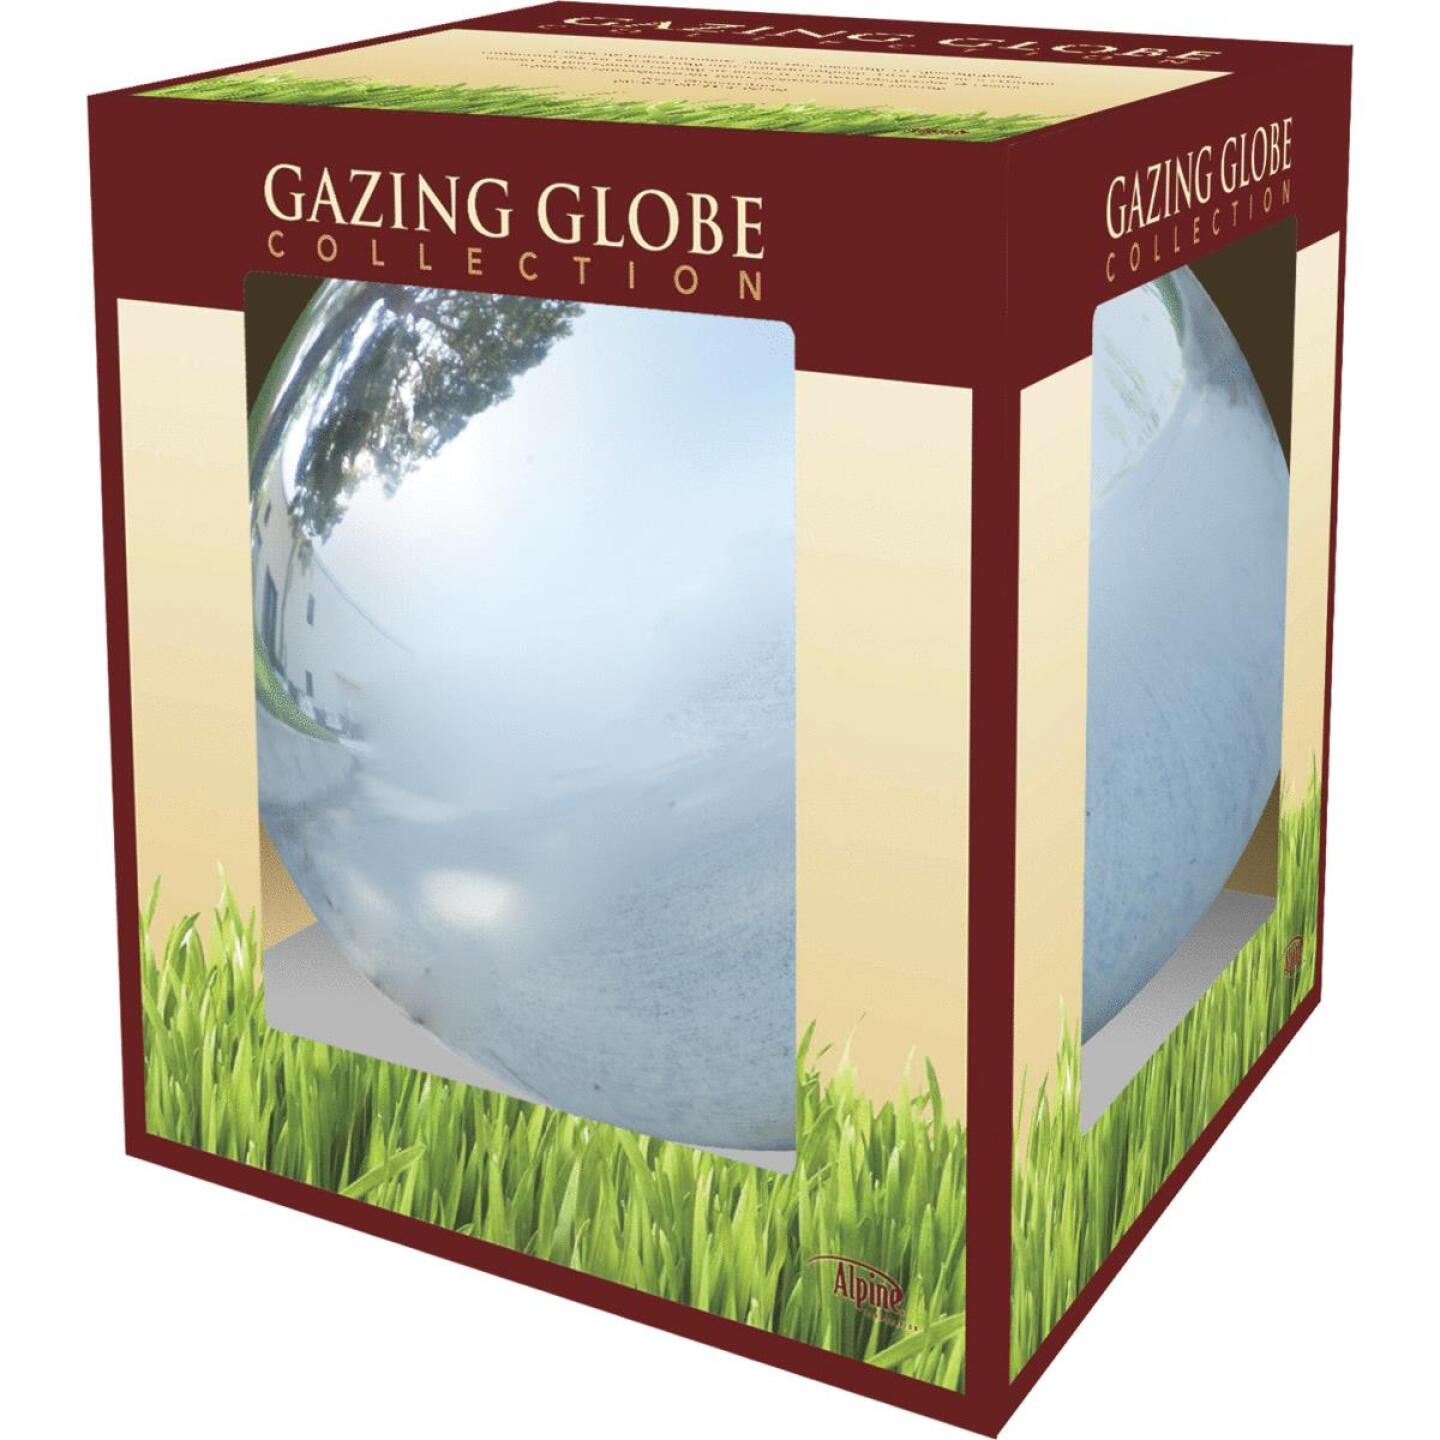 Alpine 10 In. Dia. Electric Silver Glass Gazing Globe Lawn Ornament Image 2